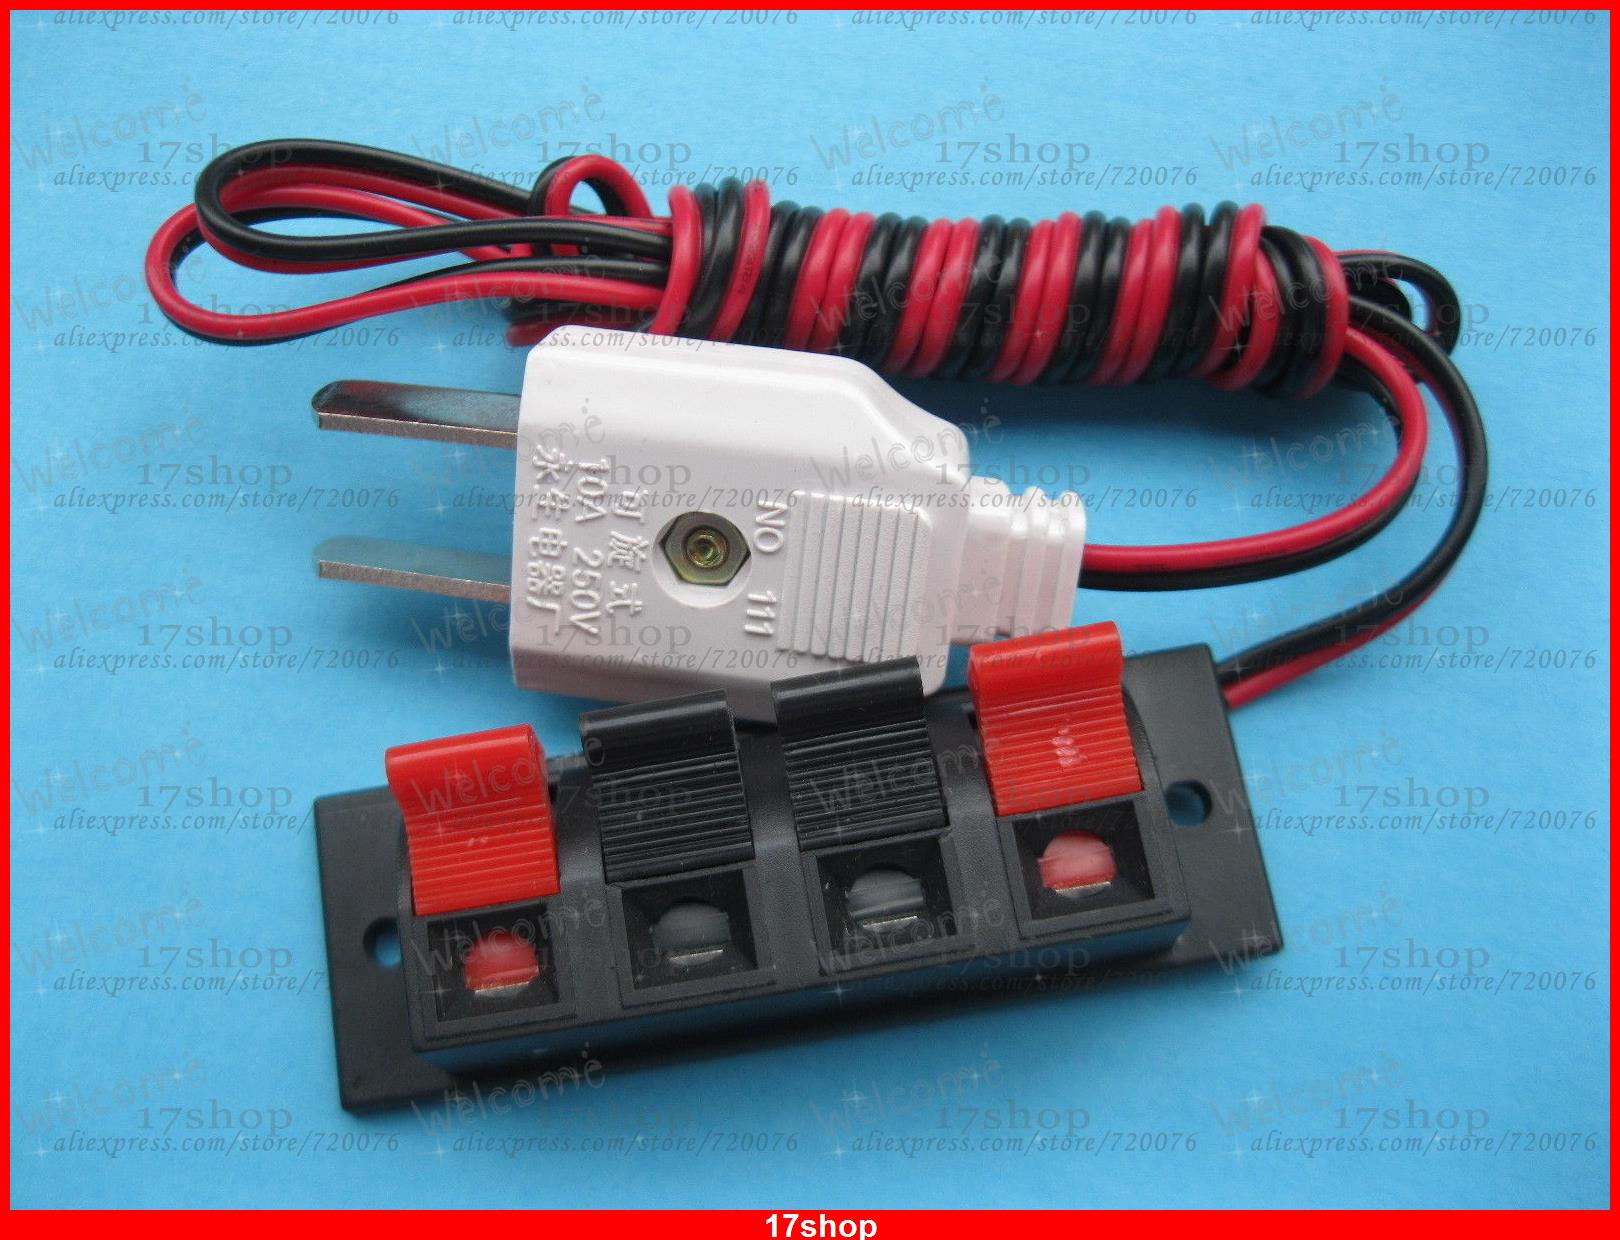 3 pcs 4 Pin Speaker Terminal Board Spring Loaded W/ US Adapter Plug 1.5m Cable new terminal board cable ac10tb